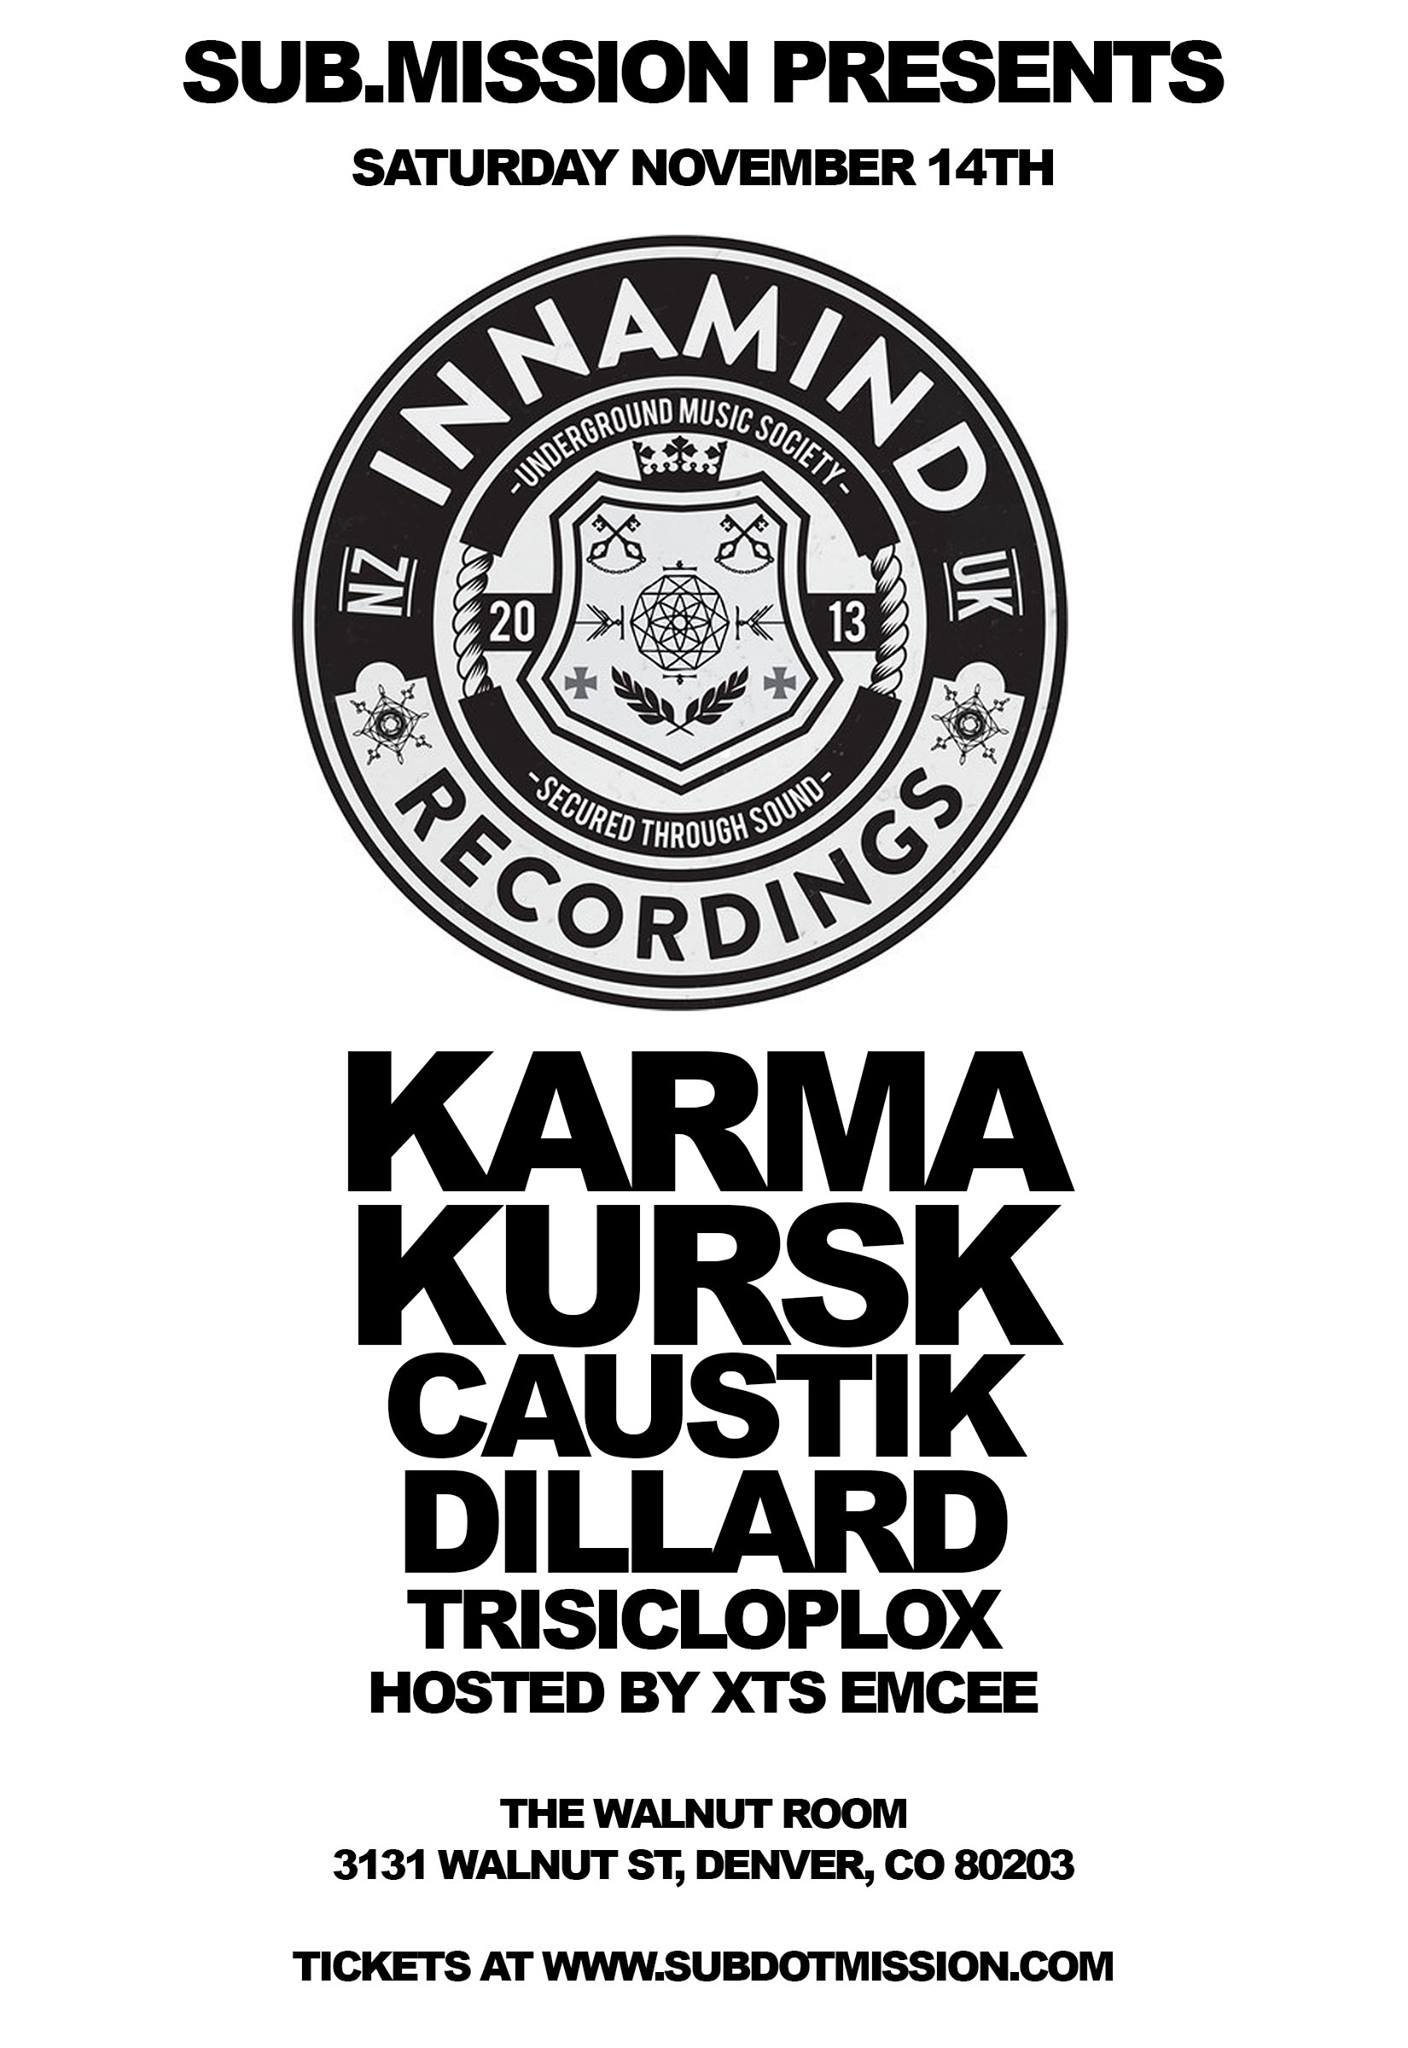 Dillard At Walnut Room With Innamind Artist Karma / Kursk. Nov. 14th